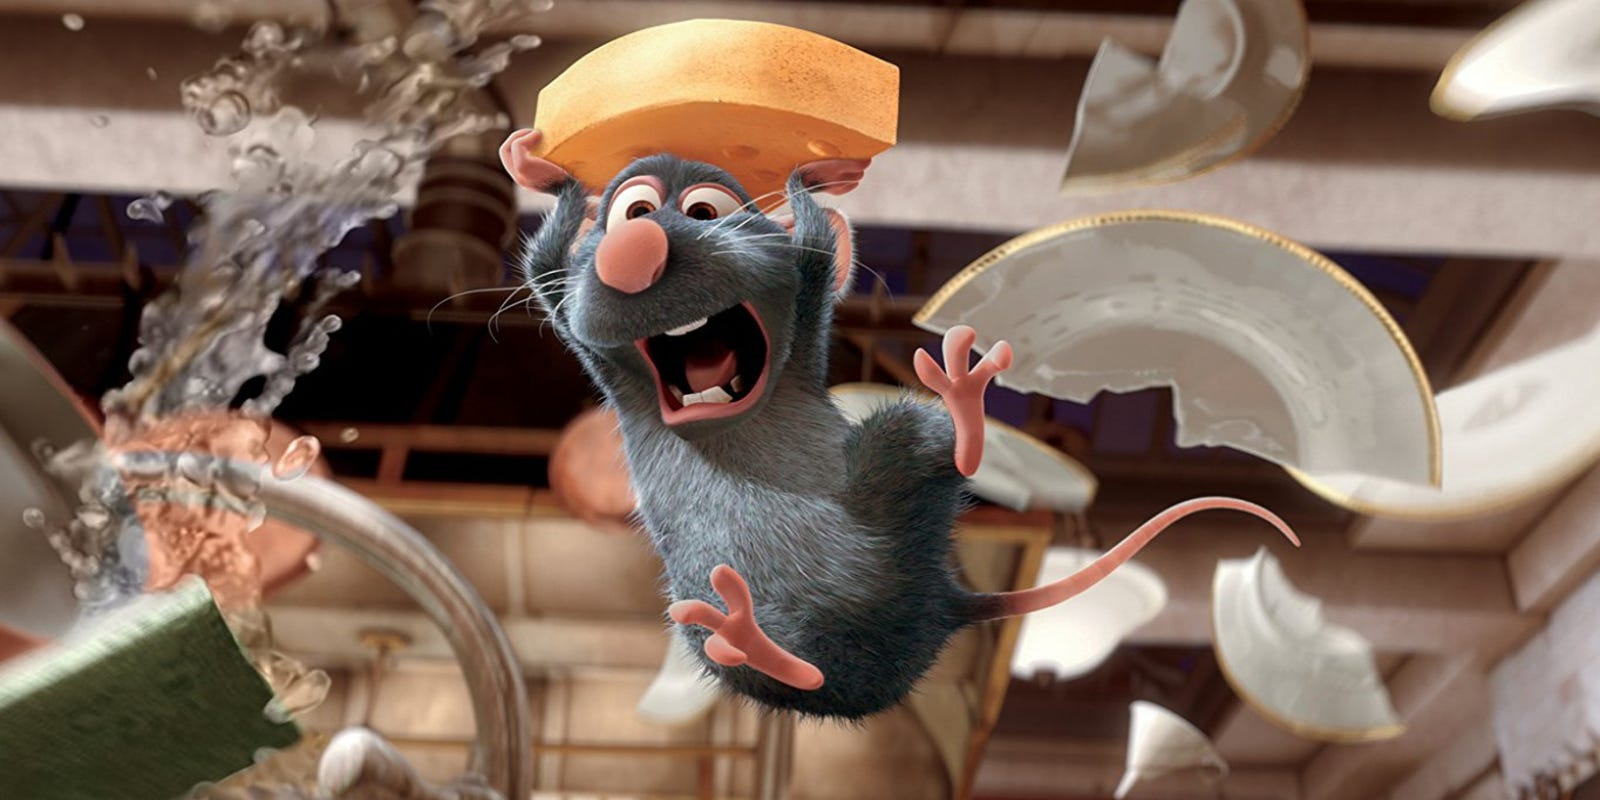 How To Watch Ratatouille Reviewed